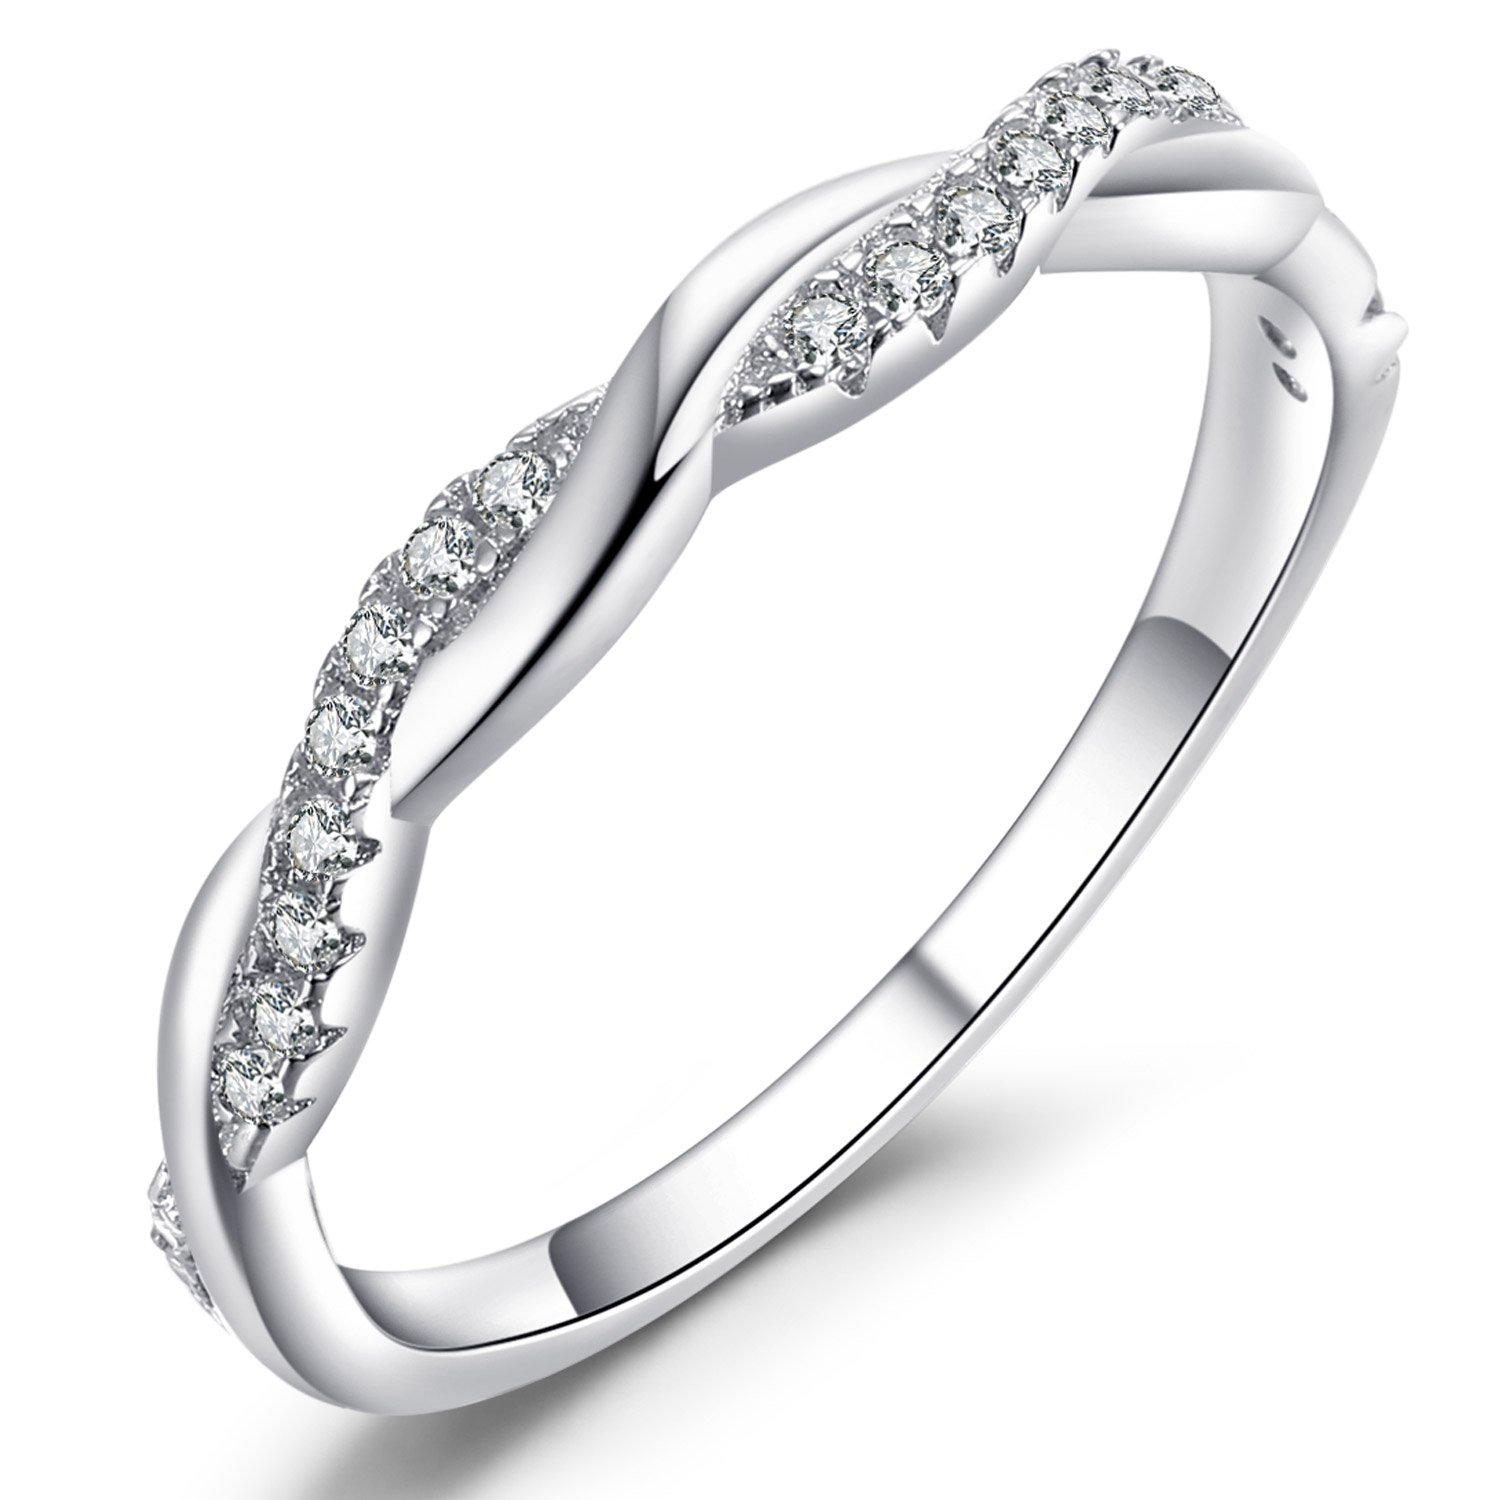 Caperci Twisted Vine Sterling Silver Cubic Zirconia CZ Anniversary Wedding Band Ring for Women Size 6 by Caperci